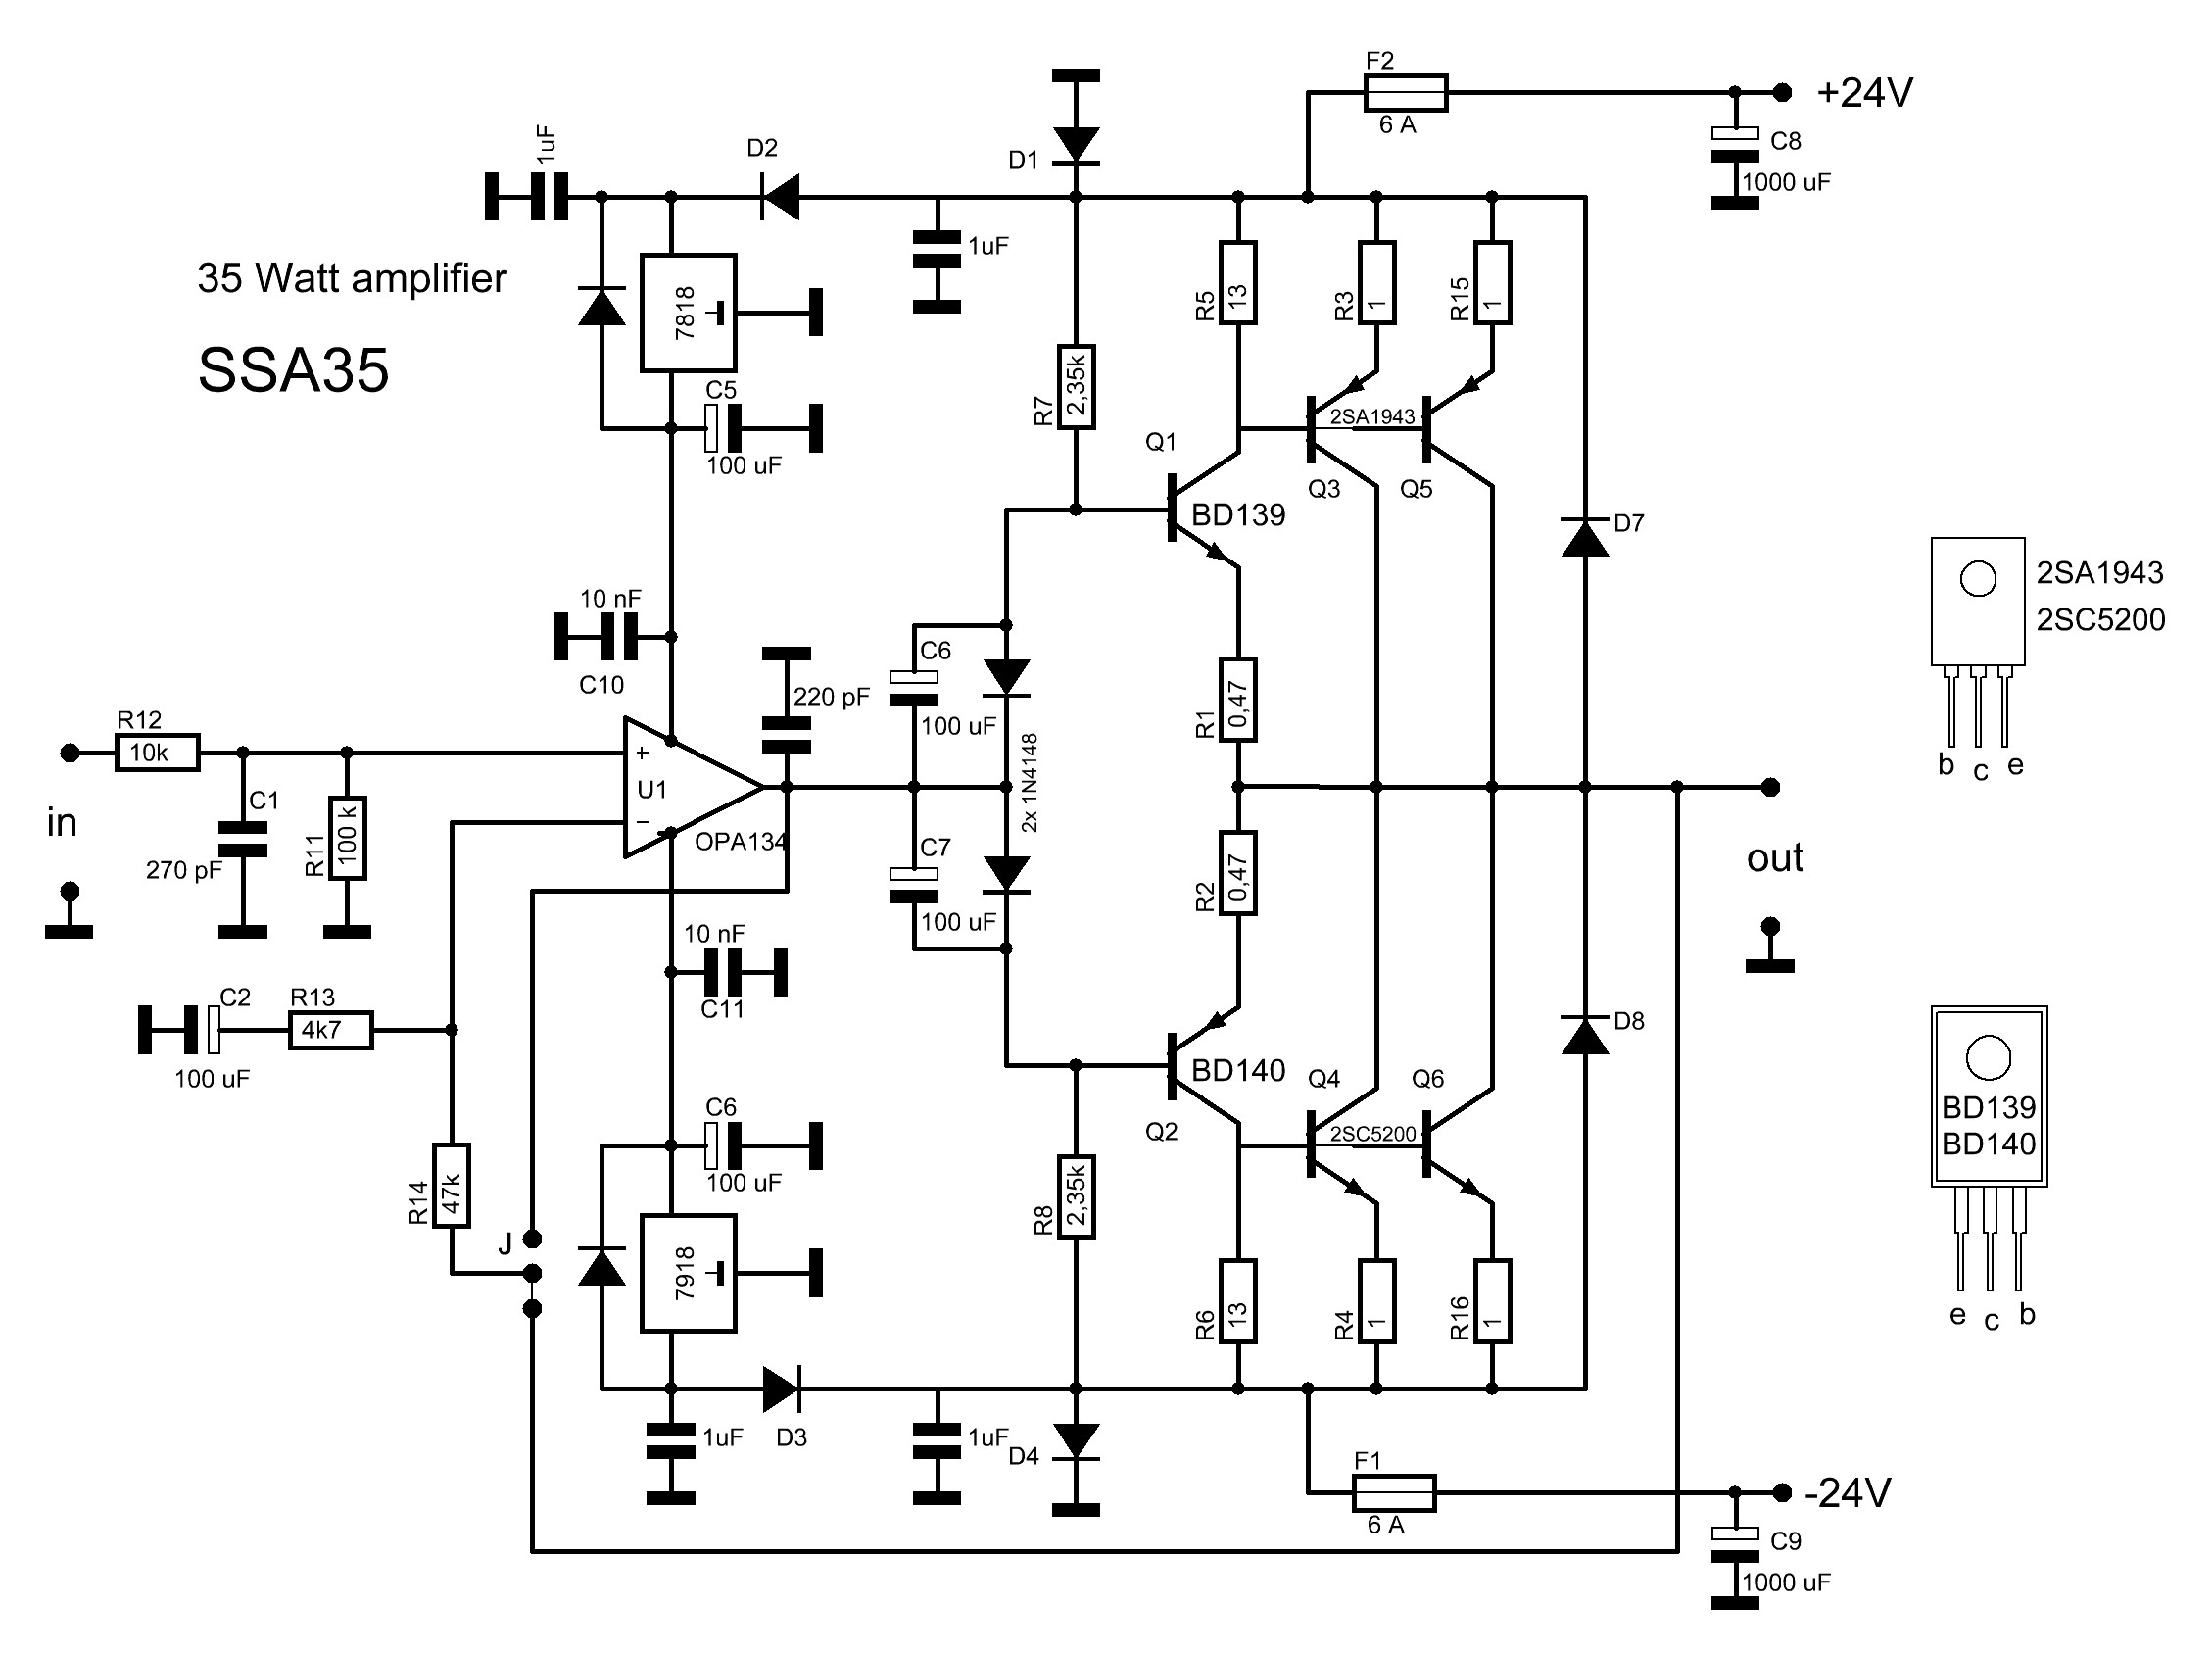 2sc5200 Amplifier Circuit Diagrams | Wiring Library